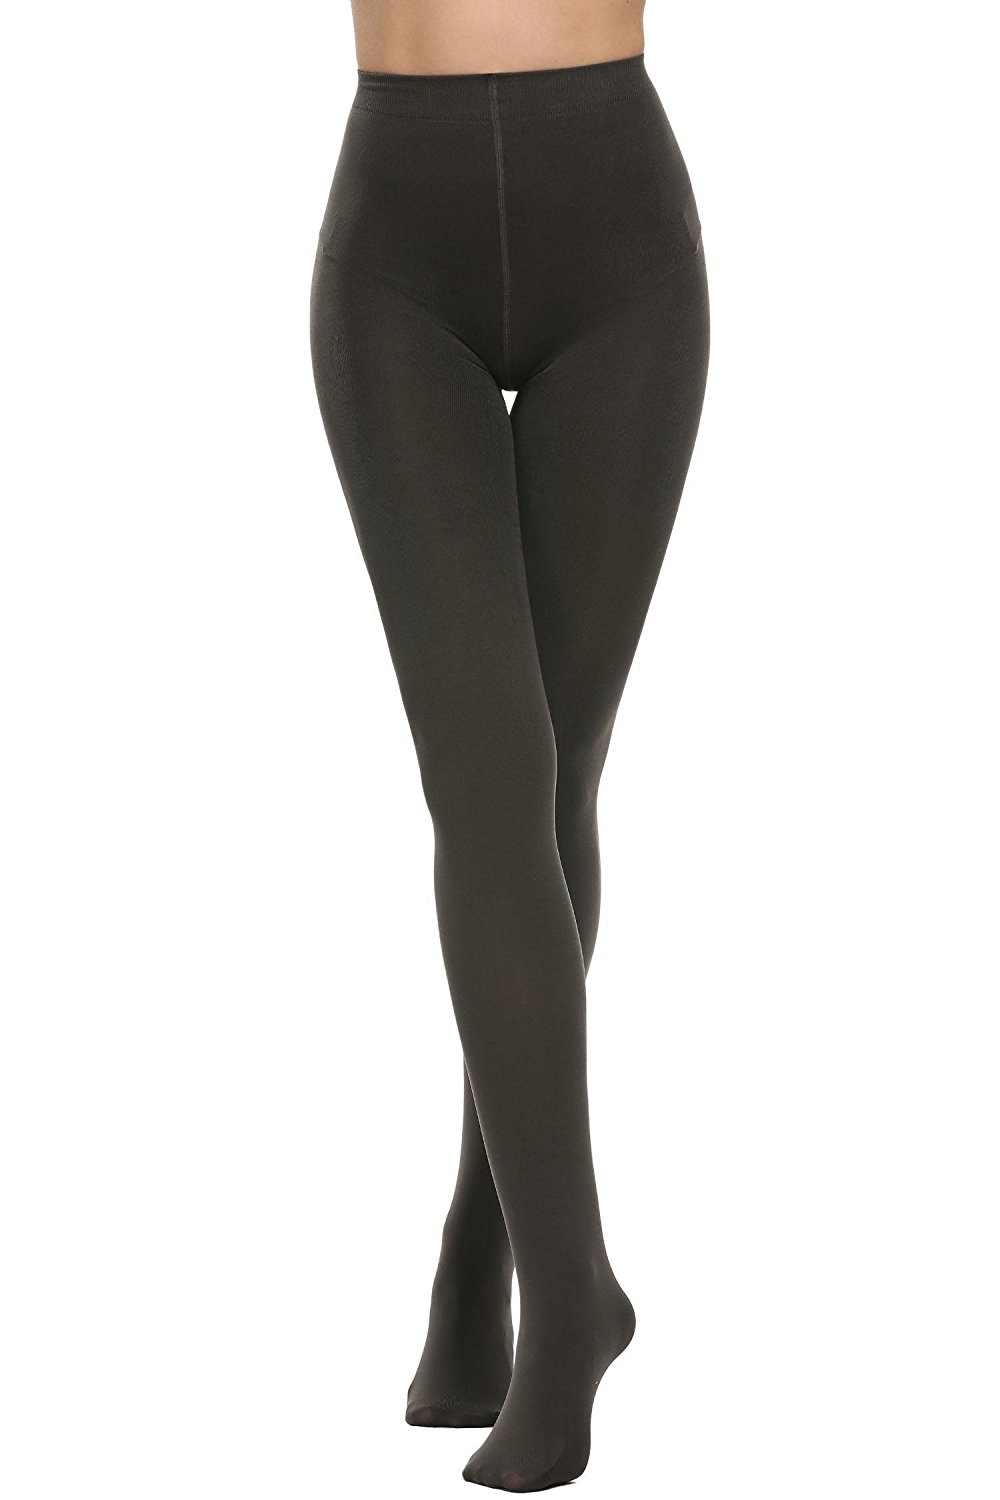 129ac0d12 Get Quotations · PEATAO 600 Denier Tights opaque tights black lady women  hosiery Opaque Footed Leg Warmers